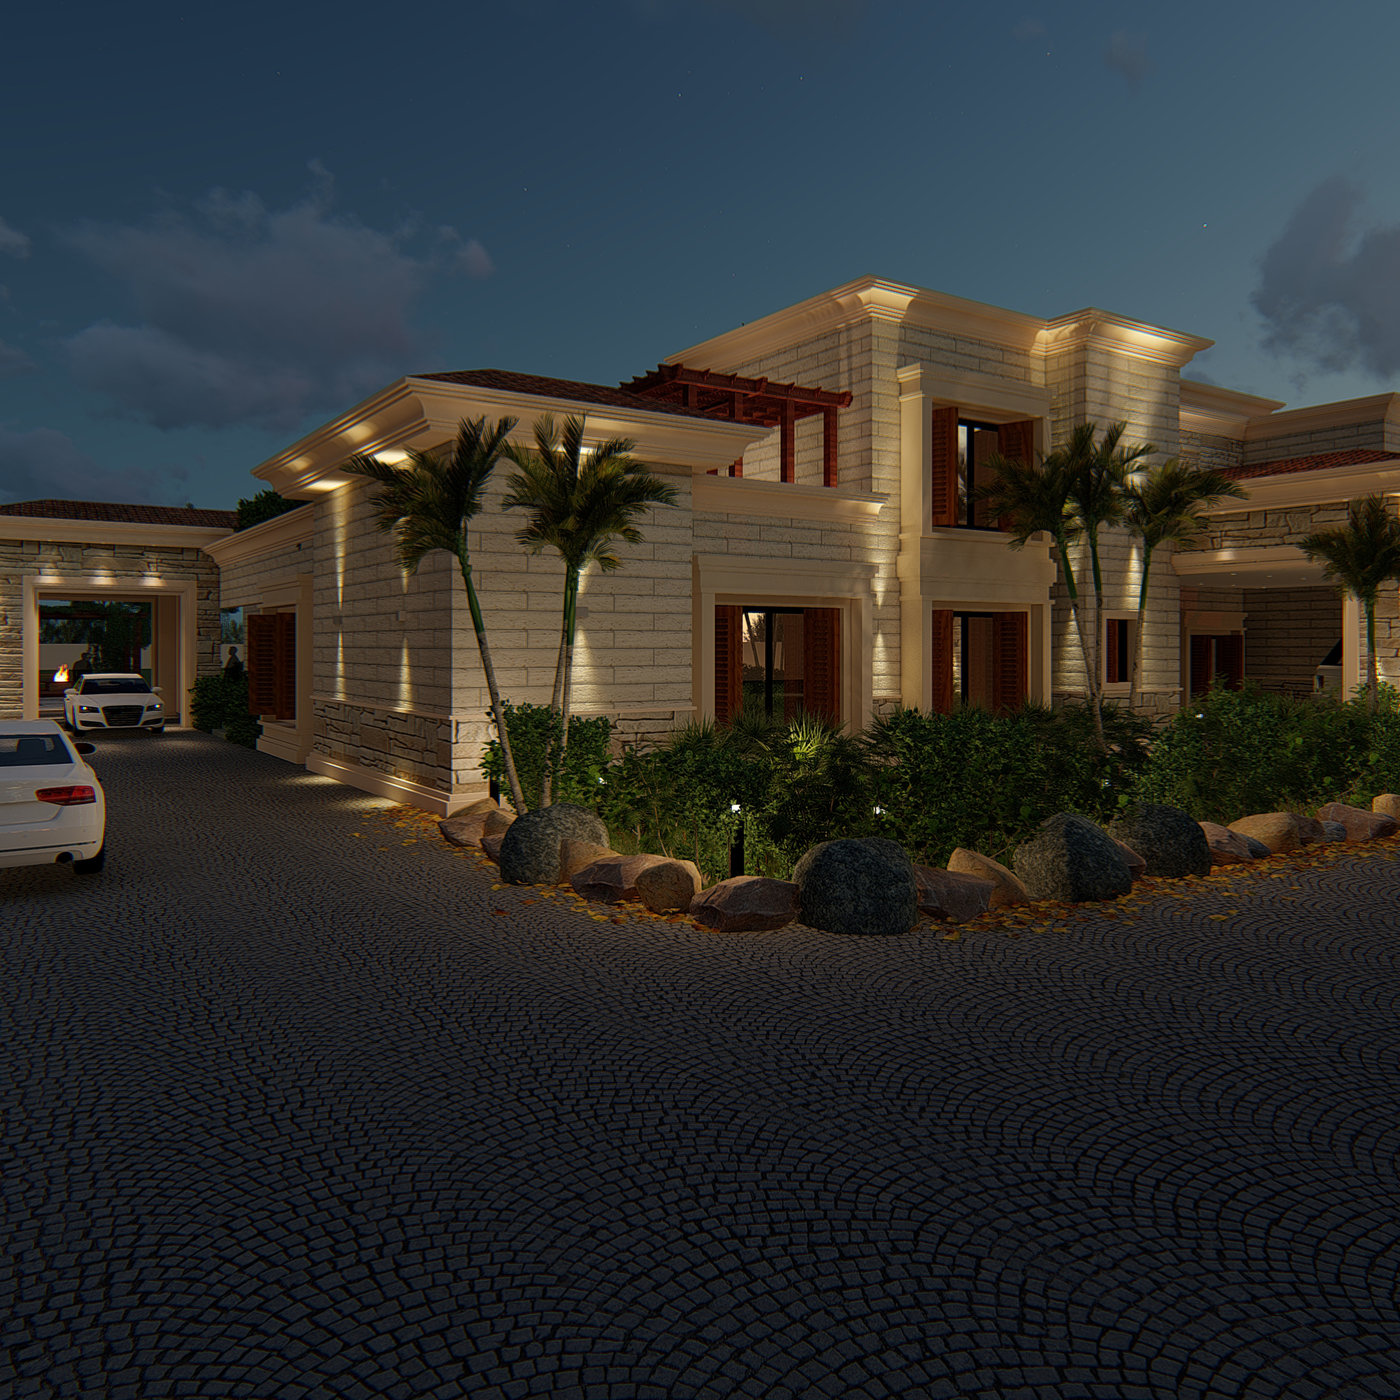 farm house design and redesign along with landscape night render